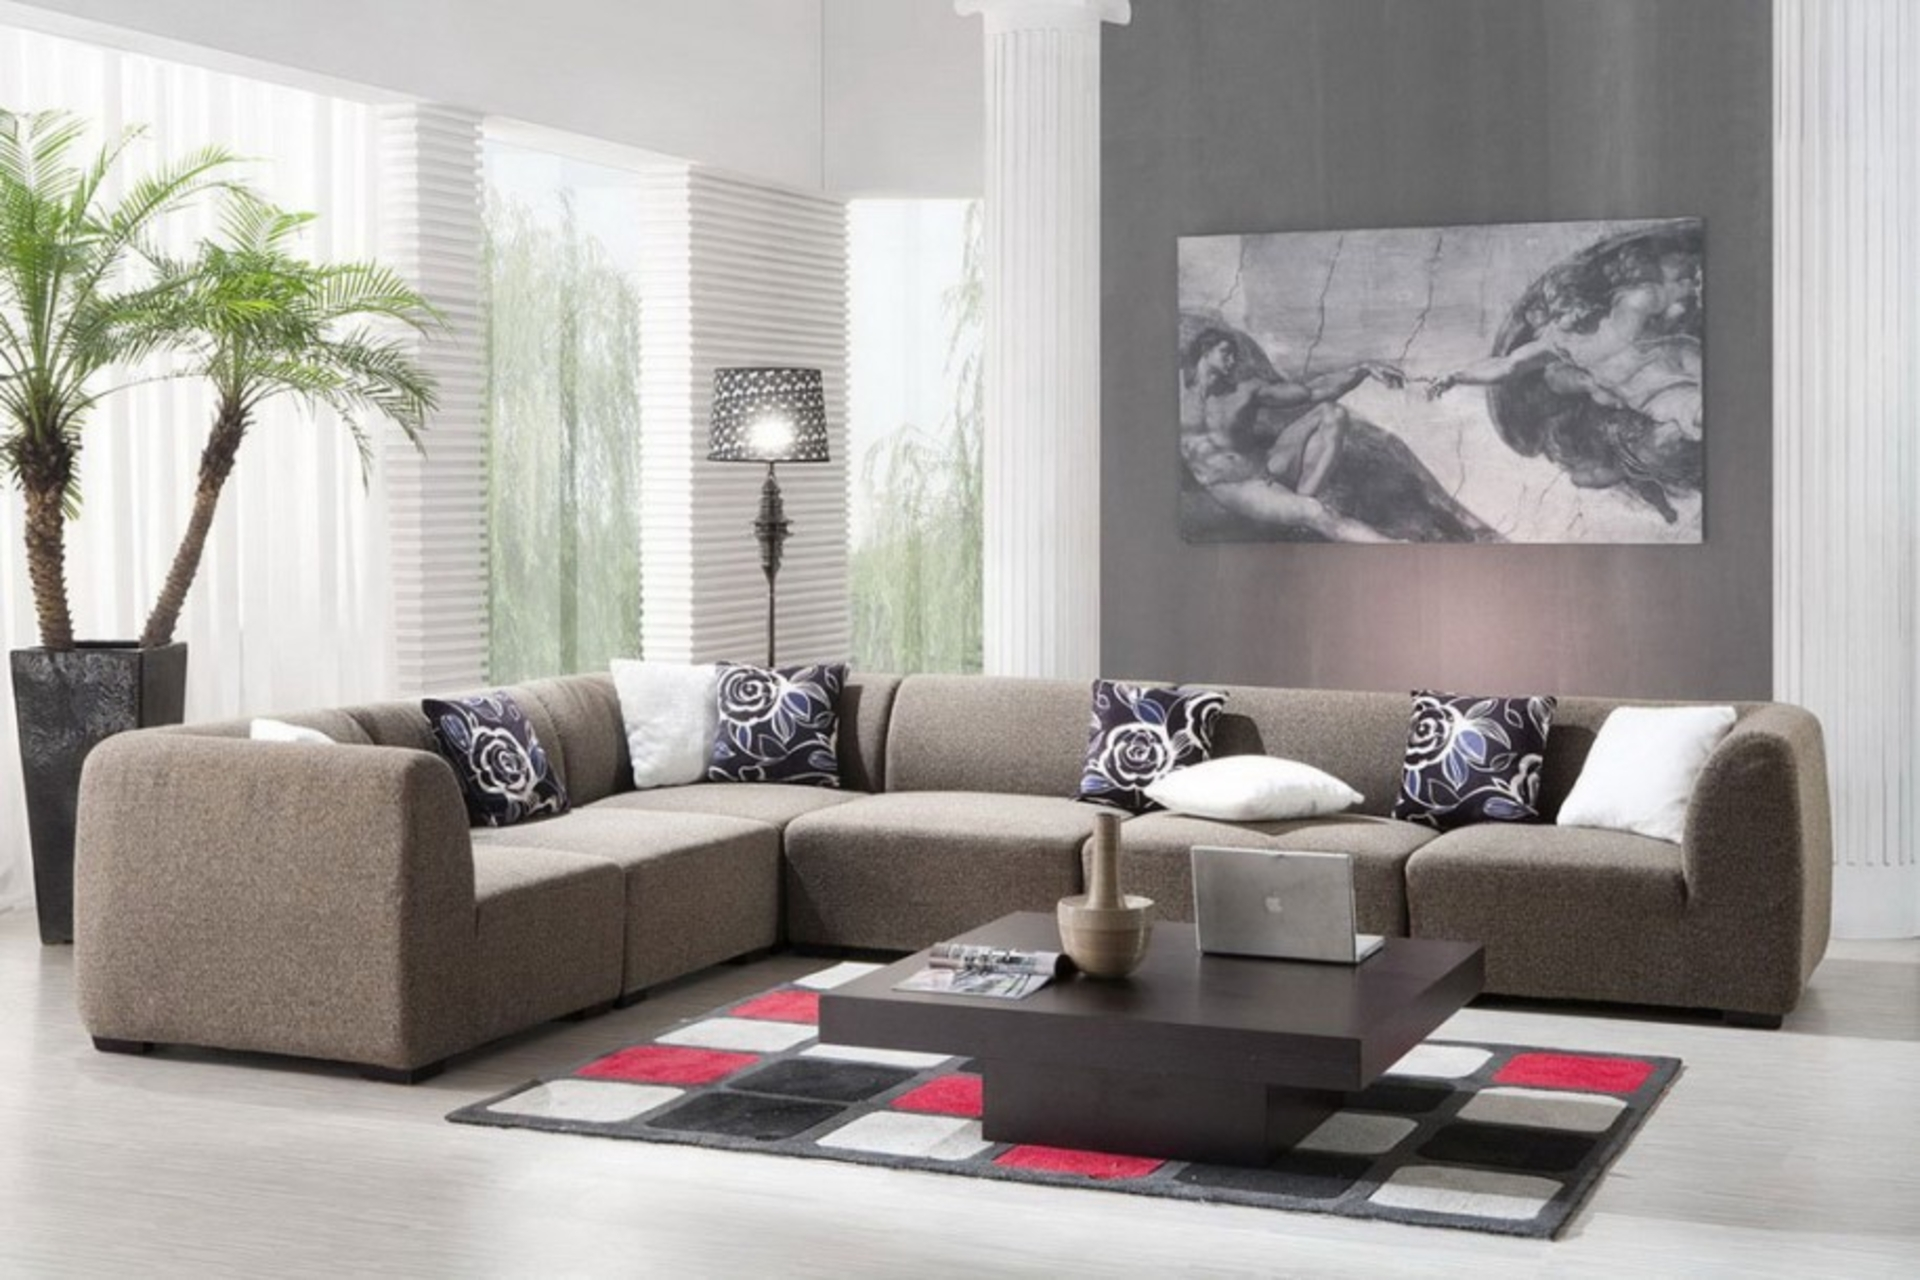 contemporary living room decorations | my decorative